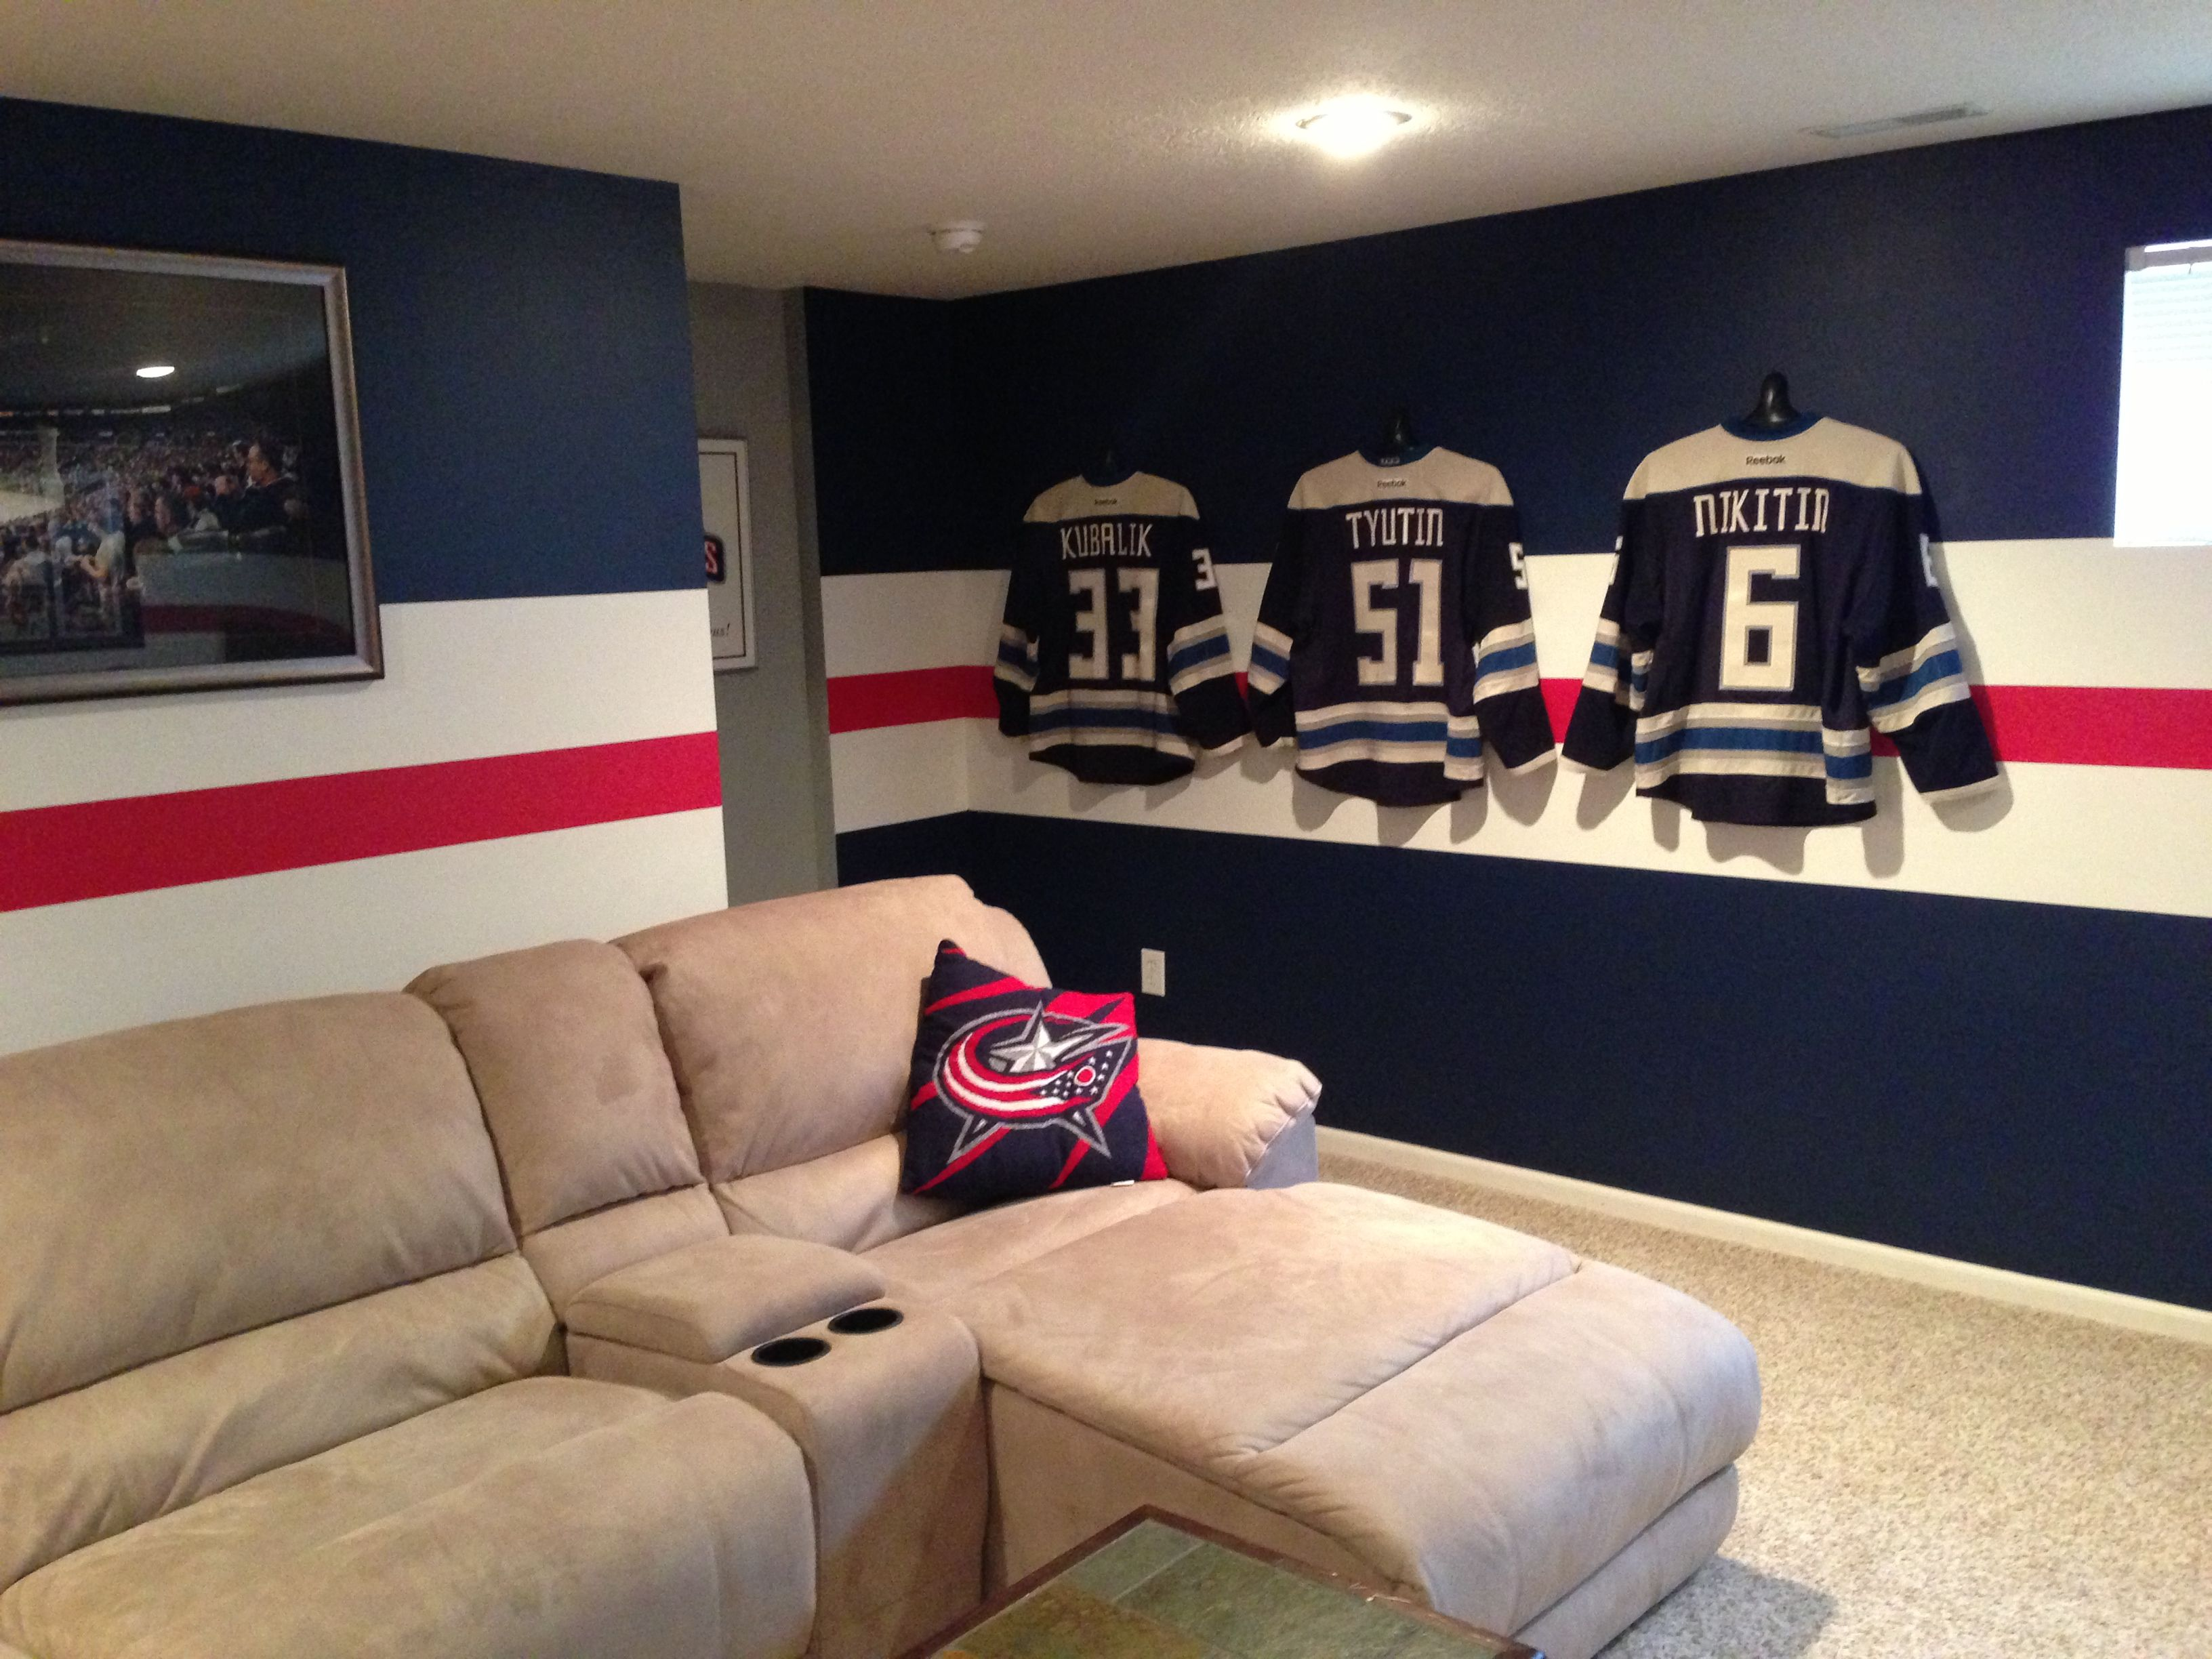 Excellent Man Cave Display Of Jerseys Using Shirtwhiz Man Cave